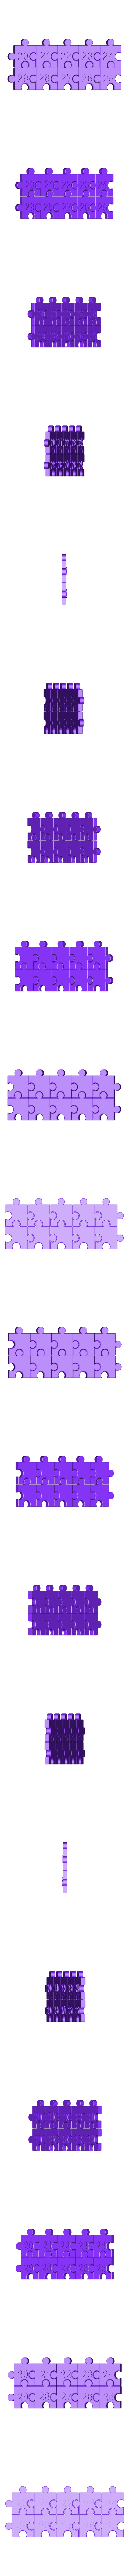 Number_20-29.stl Download free STL file Jigsaw Number Pieces, Puzzle, Sequences, Math Patterns • 3D printable design, LGBU